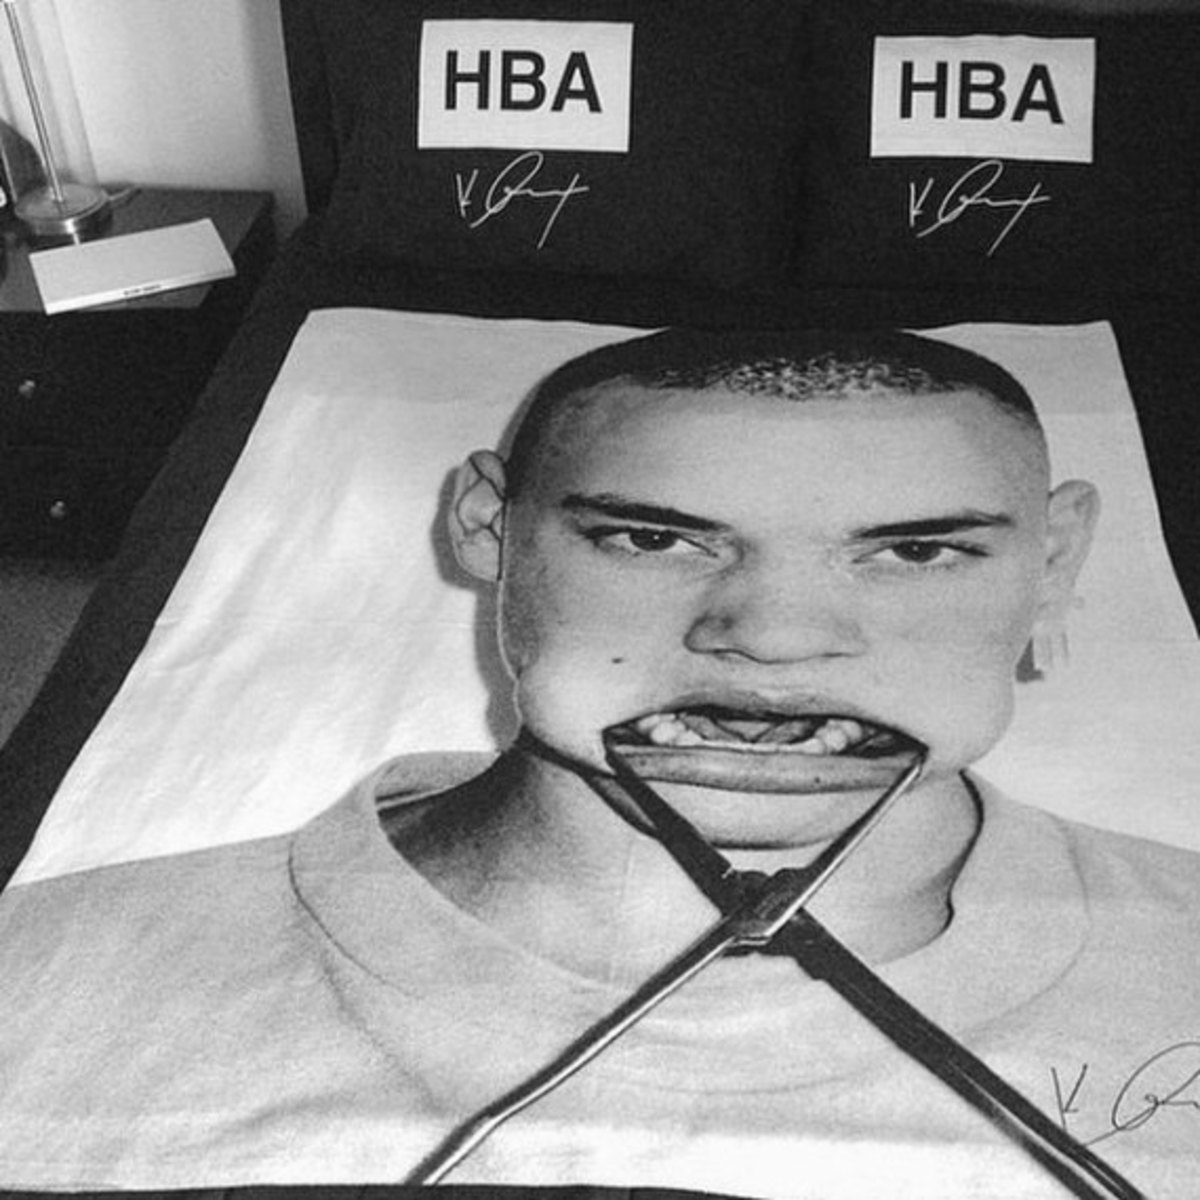 hba-off-white-duvet-pillow-set-04